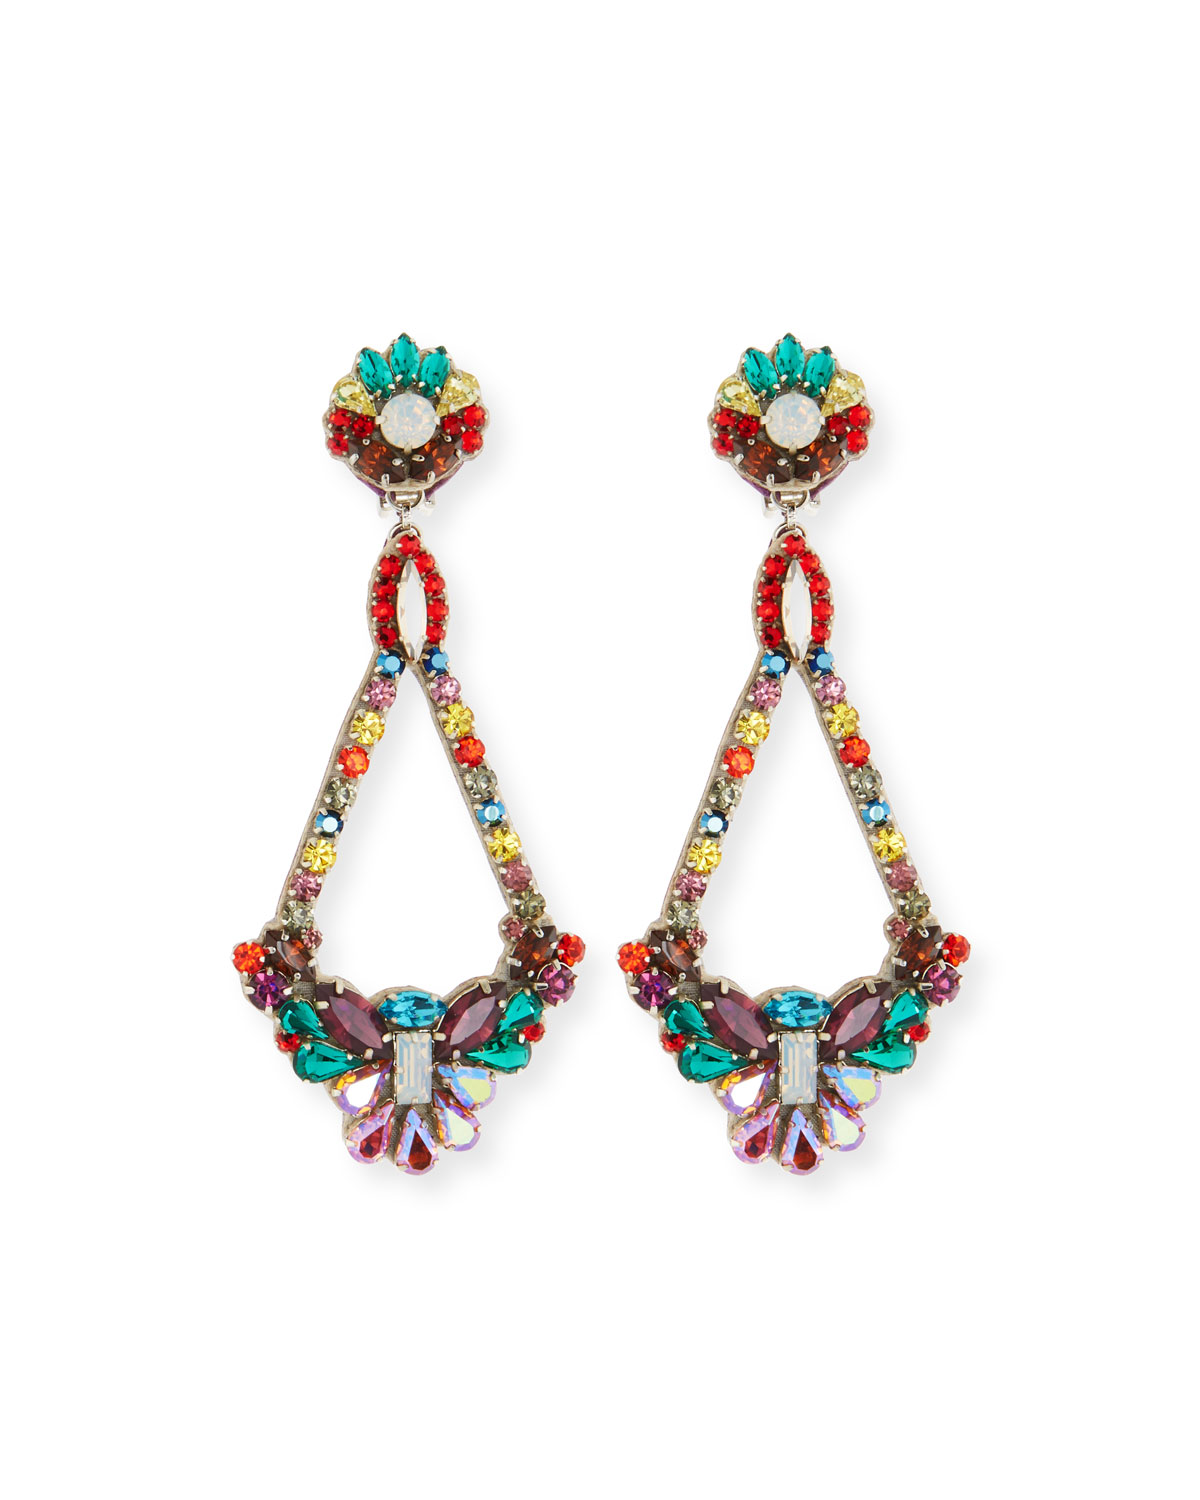 Ranjana Khan Handmade Multicolor Crystal Clip-On Earrings